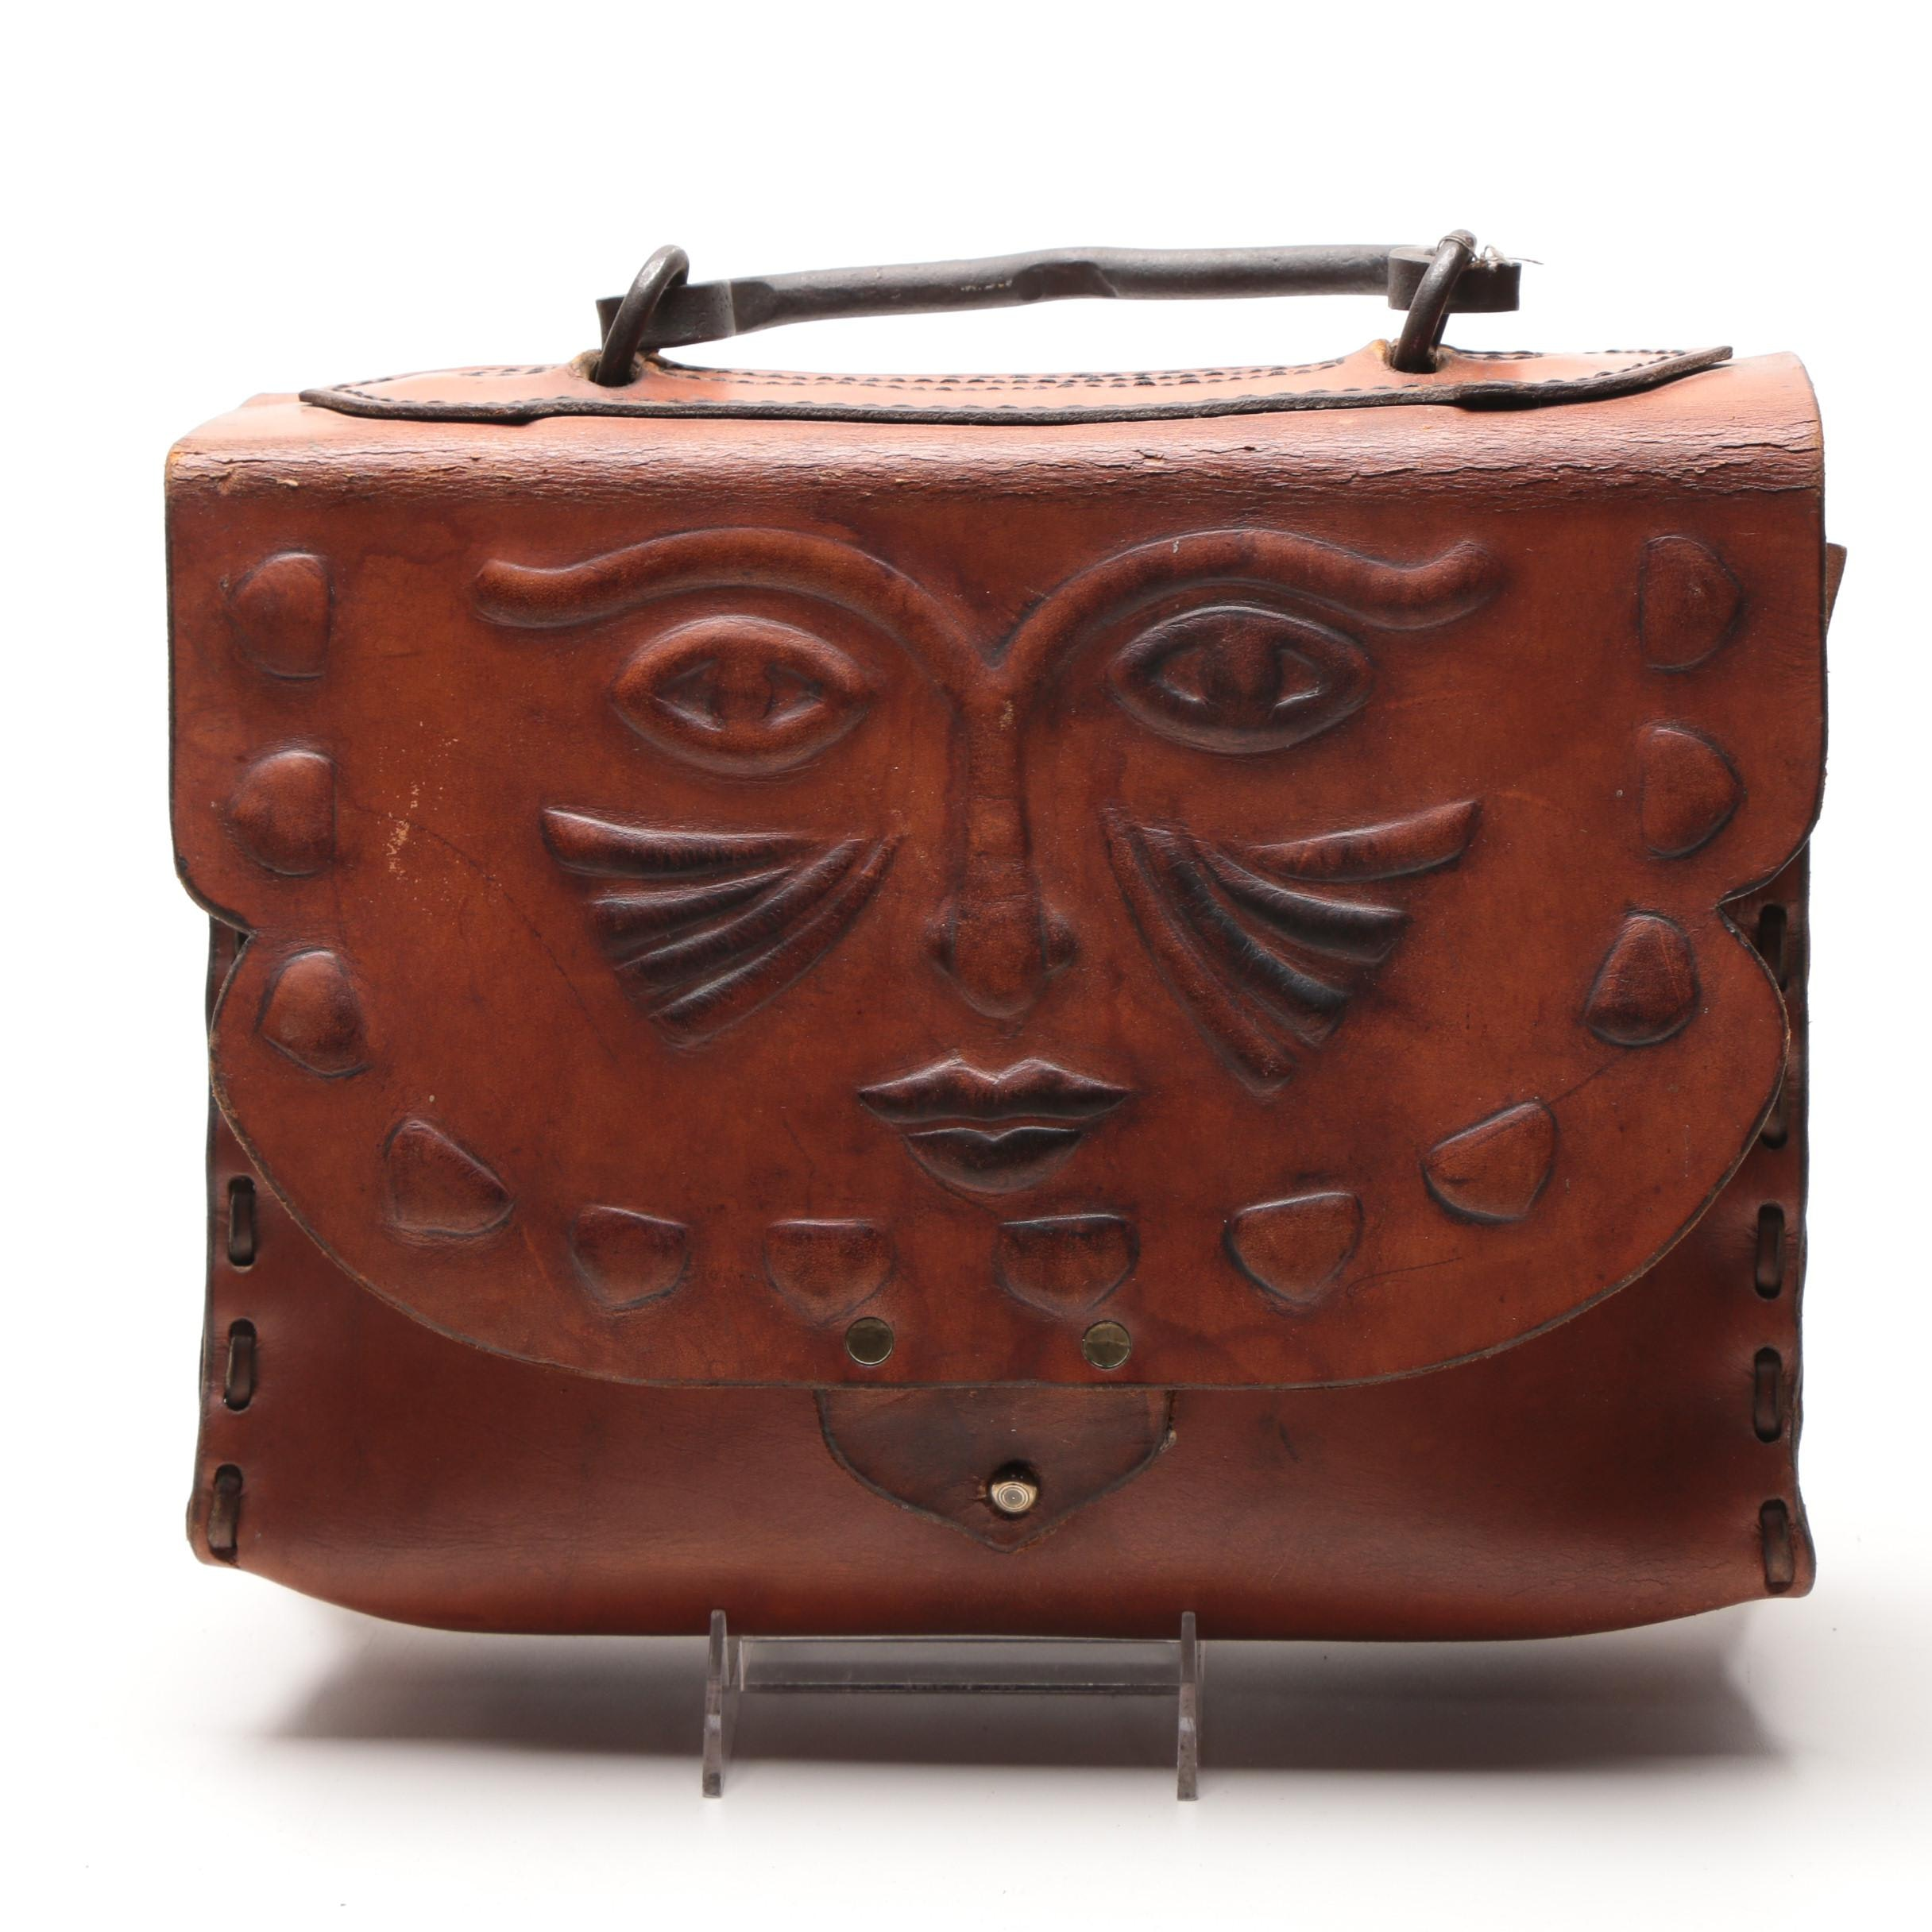 Leather Handbag with Embossed Face and Wrought Iron Handle